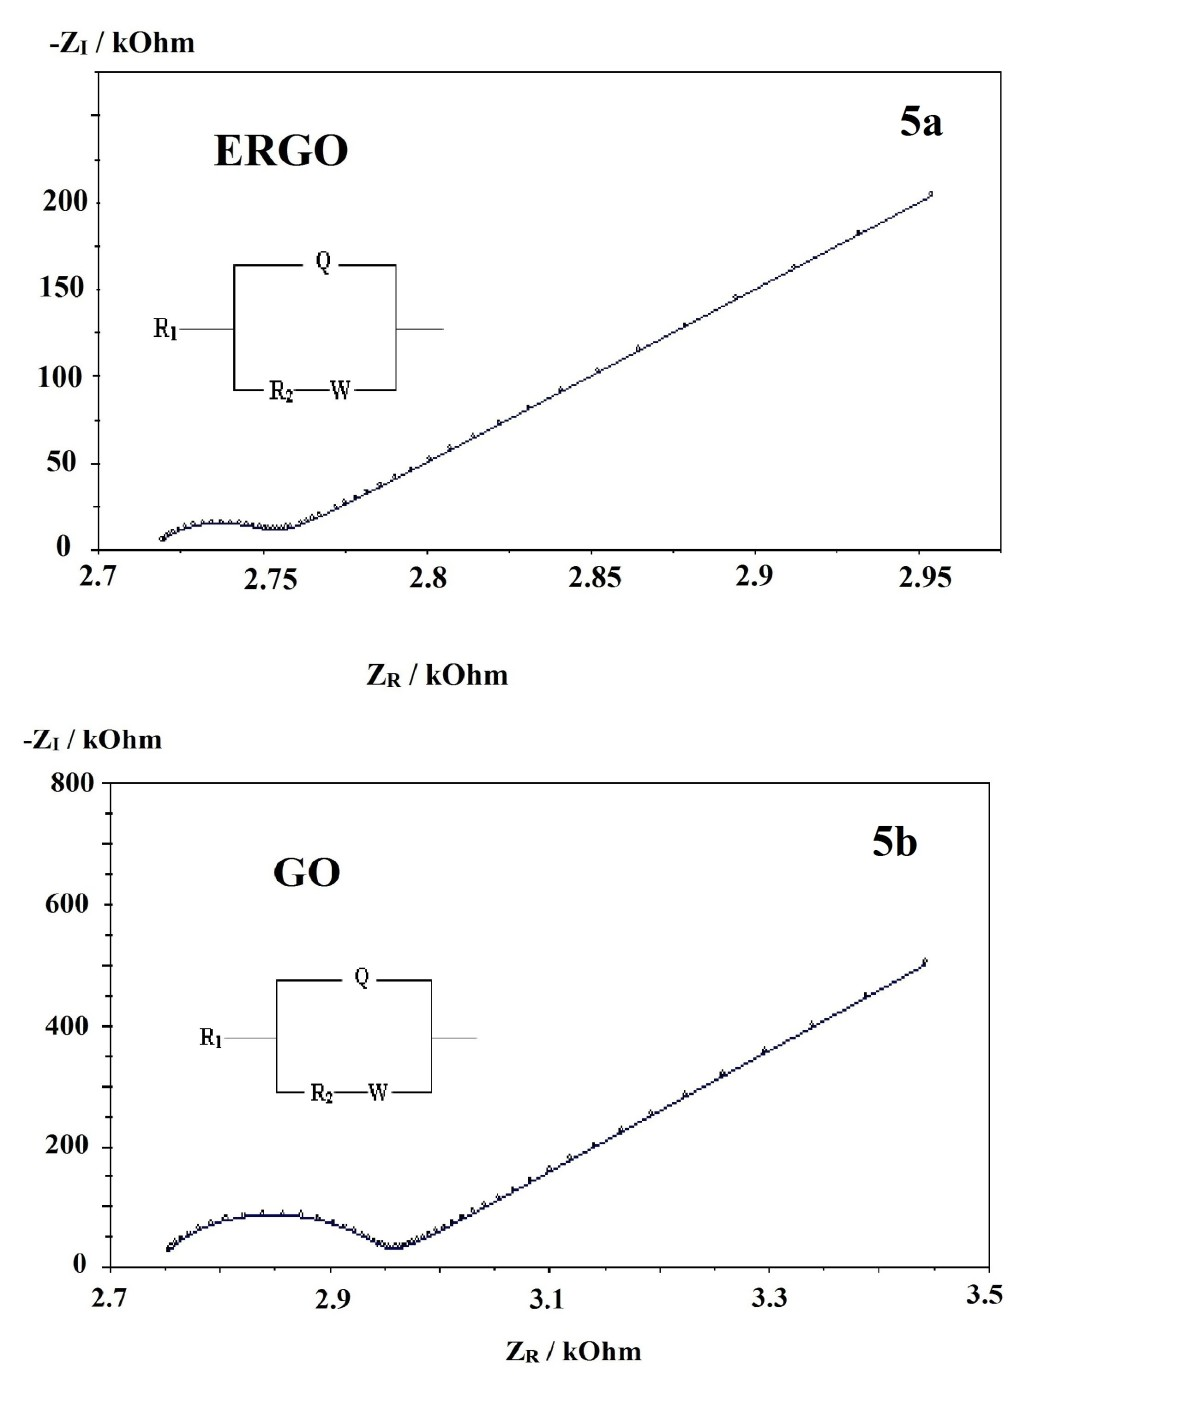 http://static-content.springer.com/image/art%3A10.1186%2F1556-276X-8-397/MediaObjects/11671_2013_Article_1676_Fig5_HTML.jpg